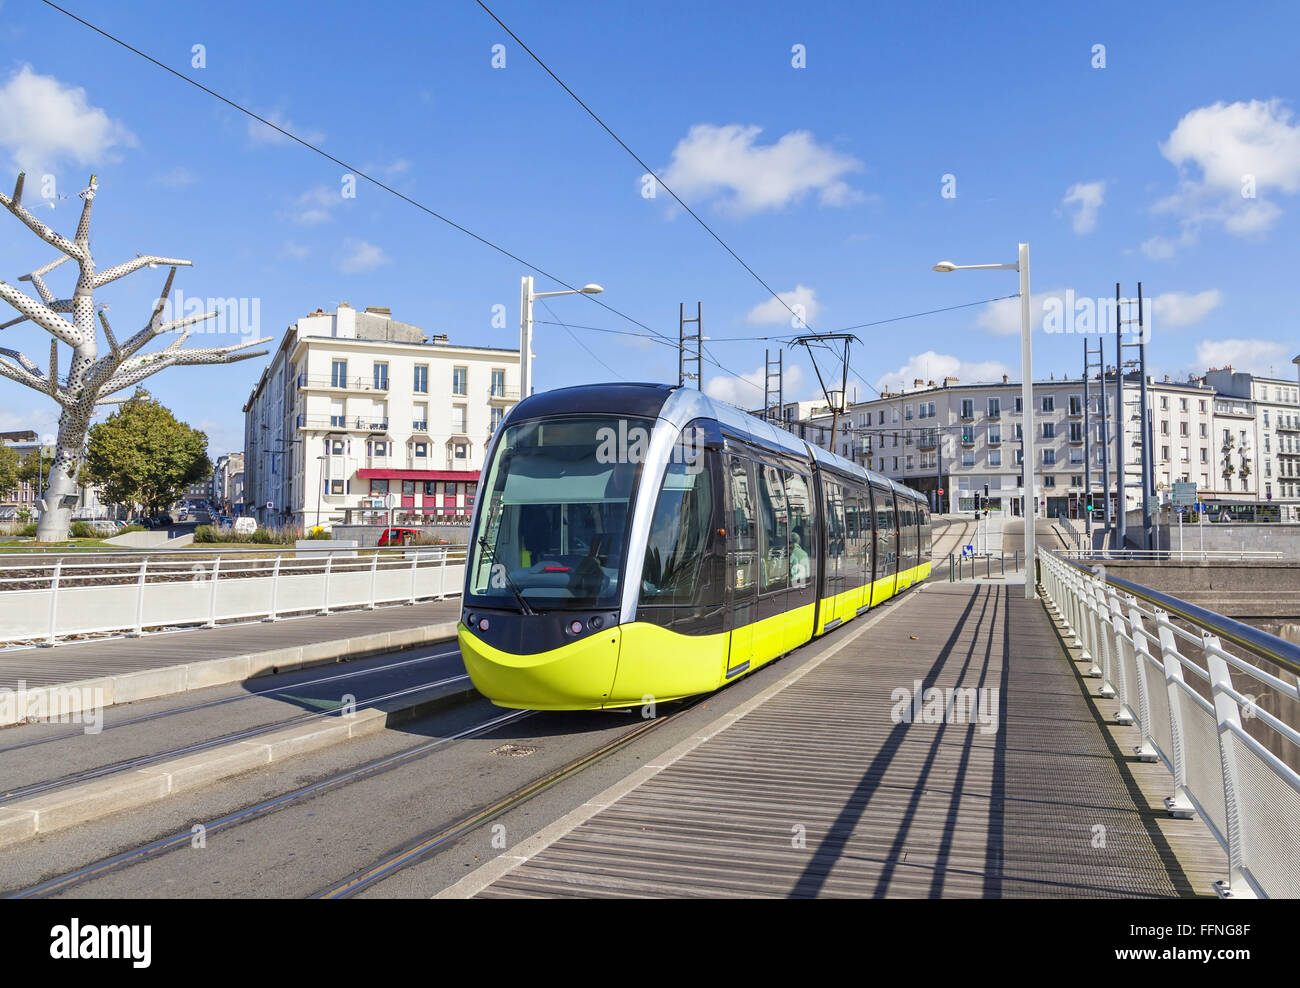 Yellow tram on the street of Brest, Brittany, France - Stock Image